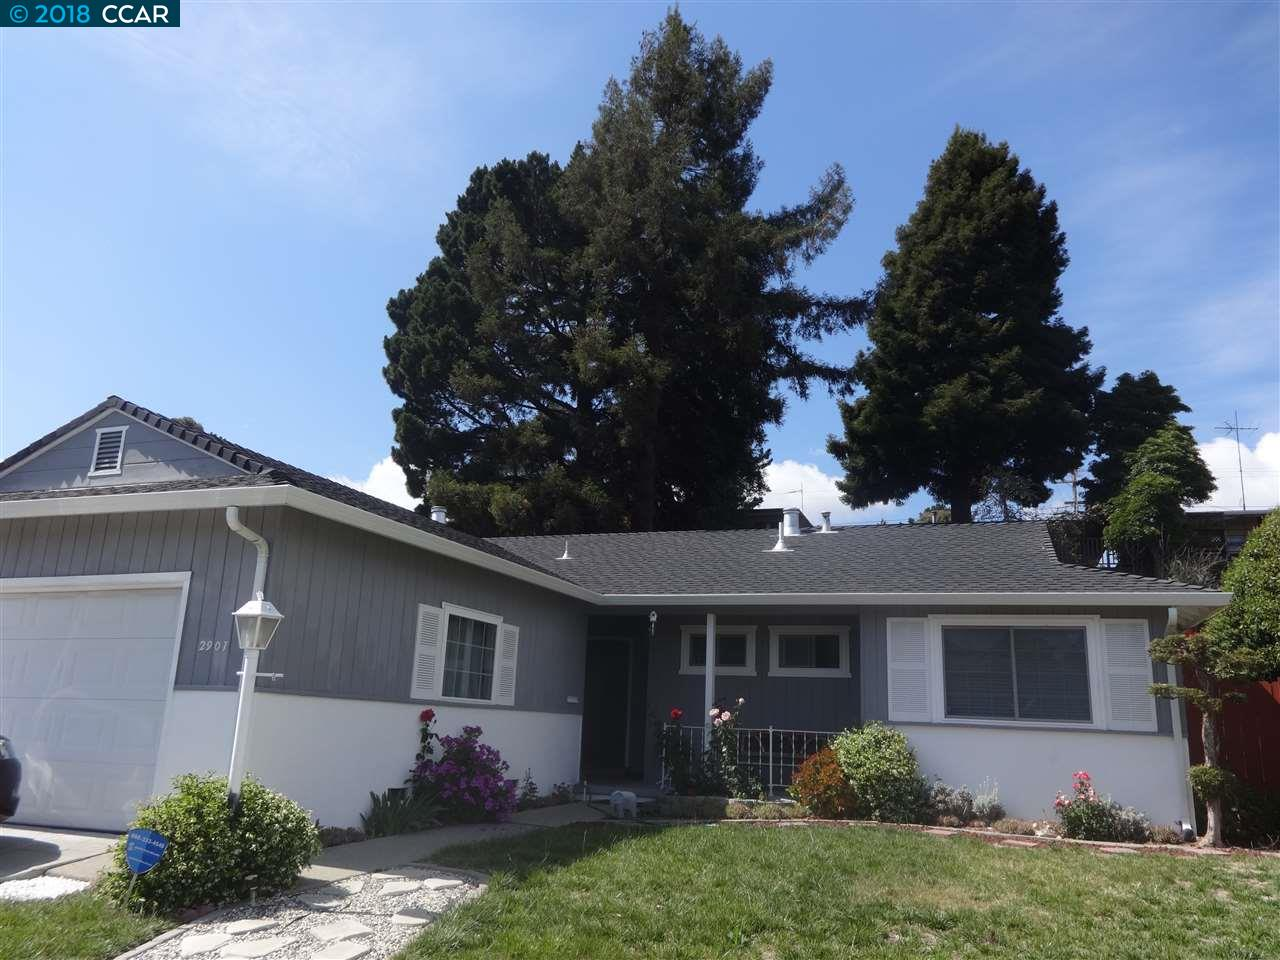 2907 MAY ROAD, RICHMOND, CA 94803